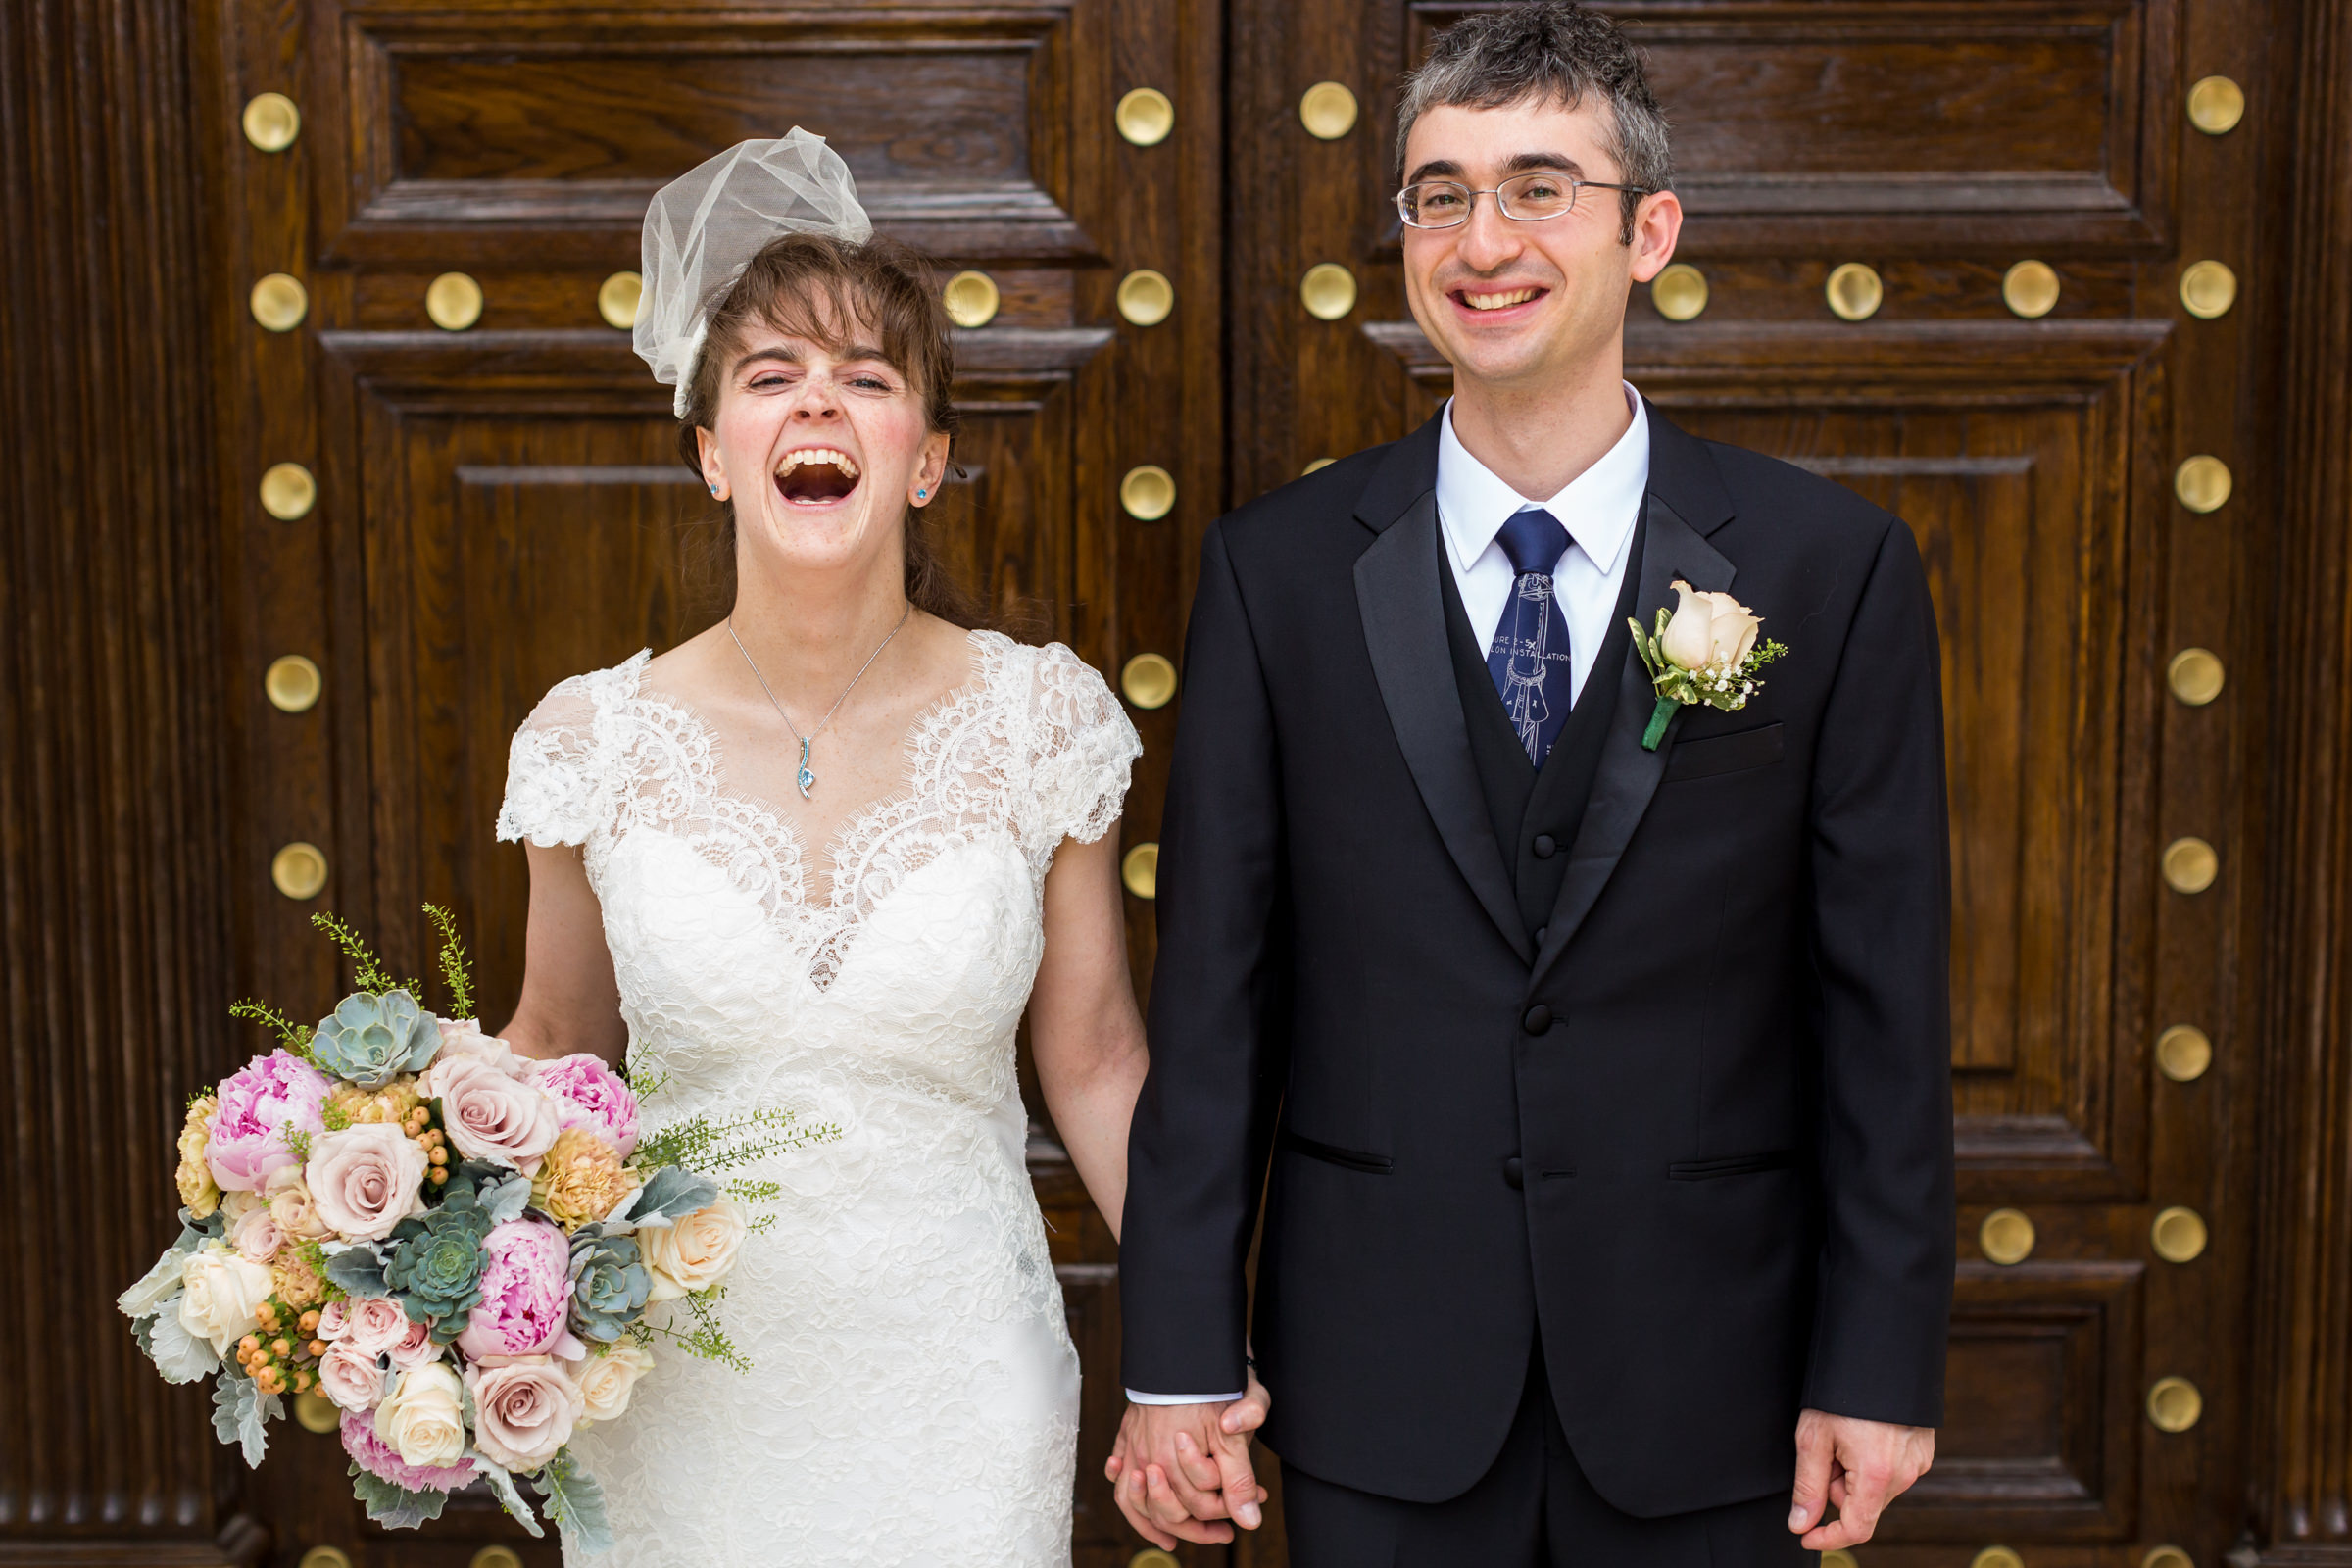 Laughing bride with groom against ornate wooden door - photo by Procopio Photography